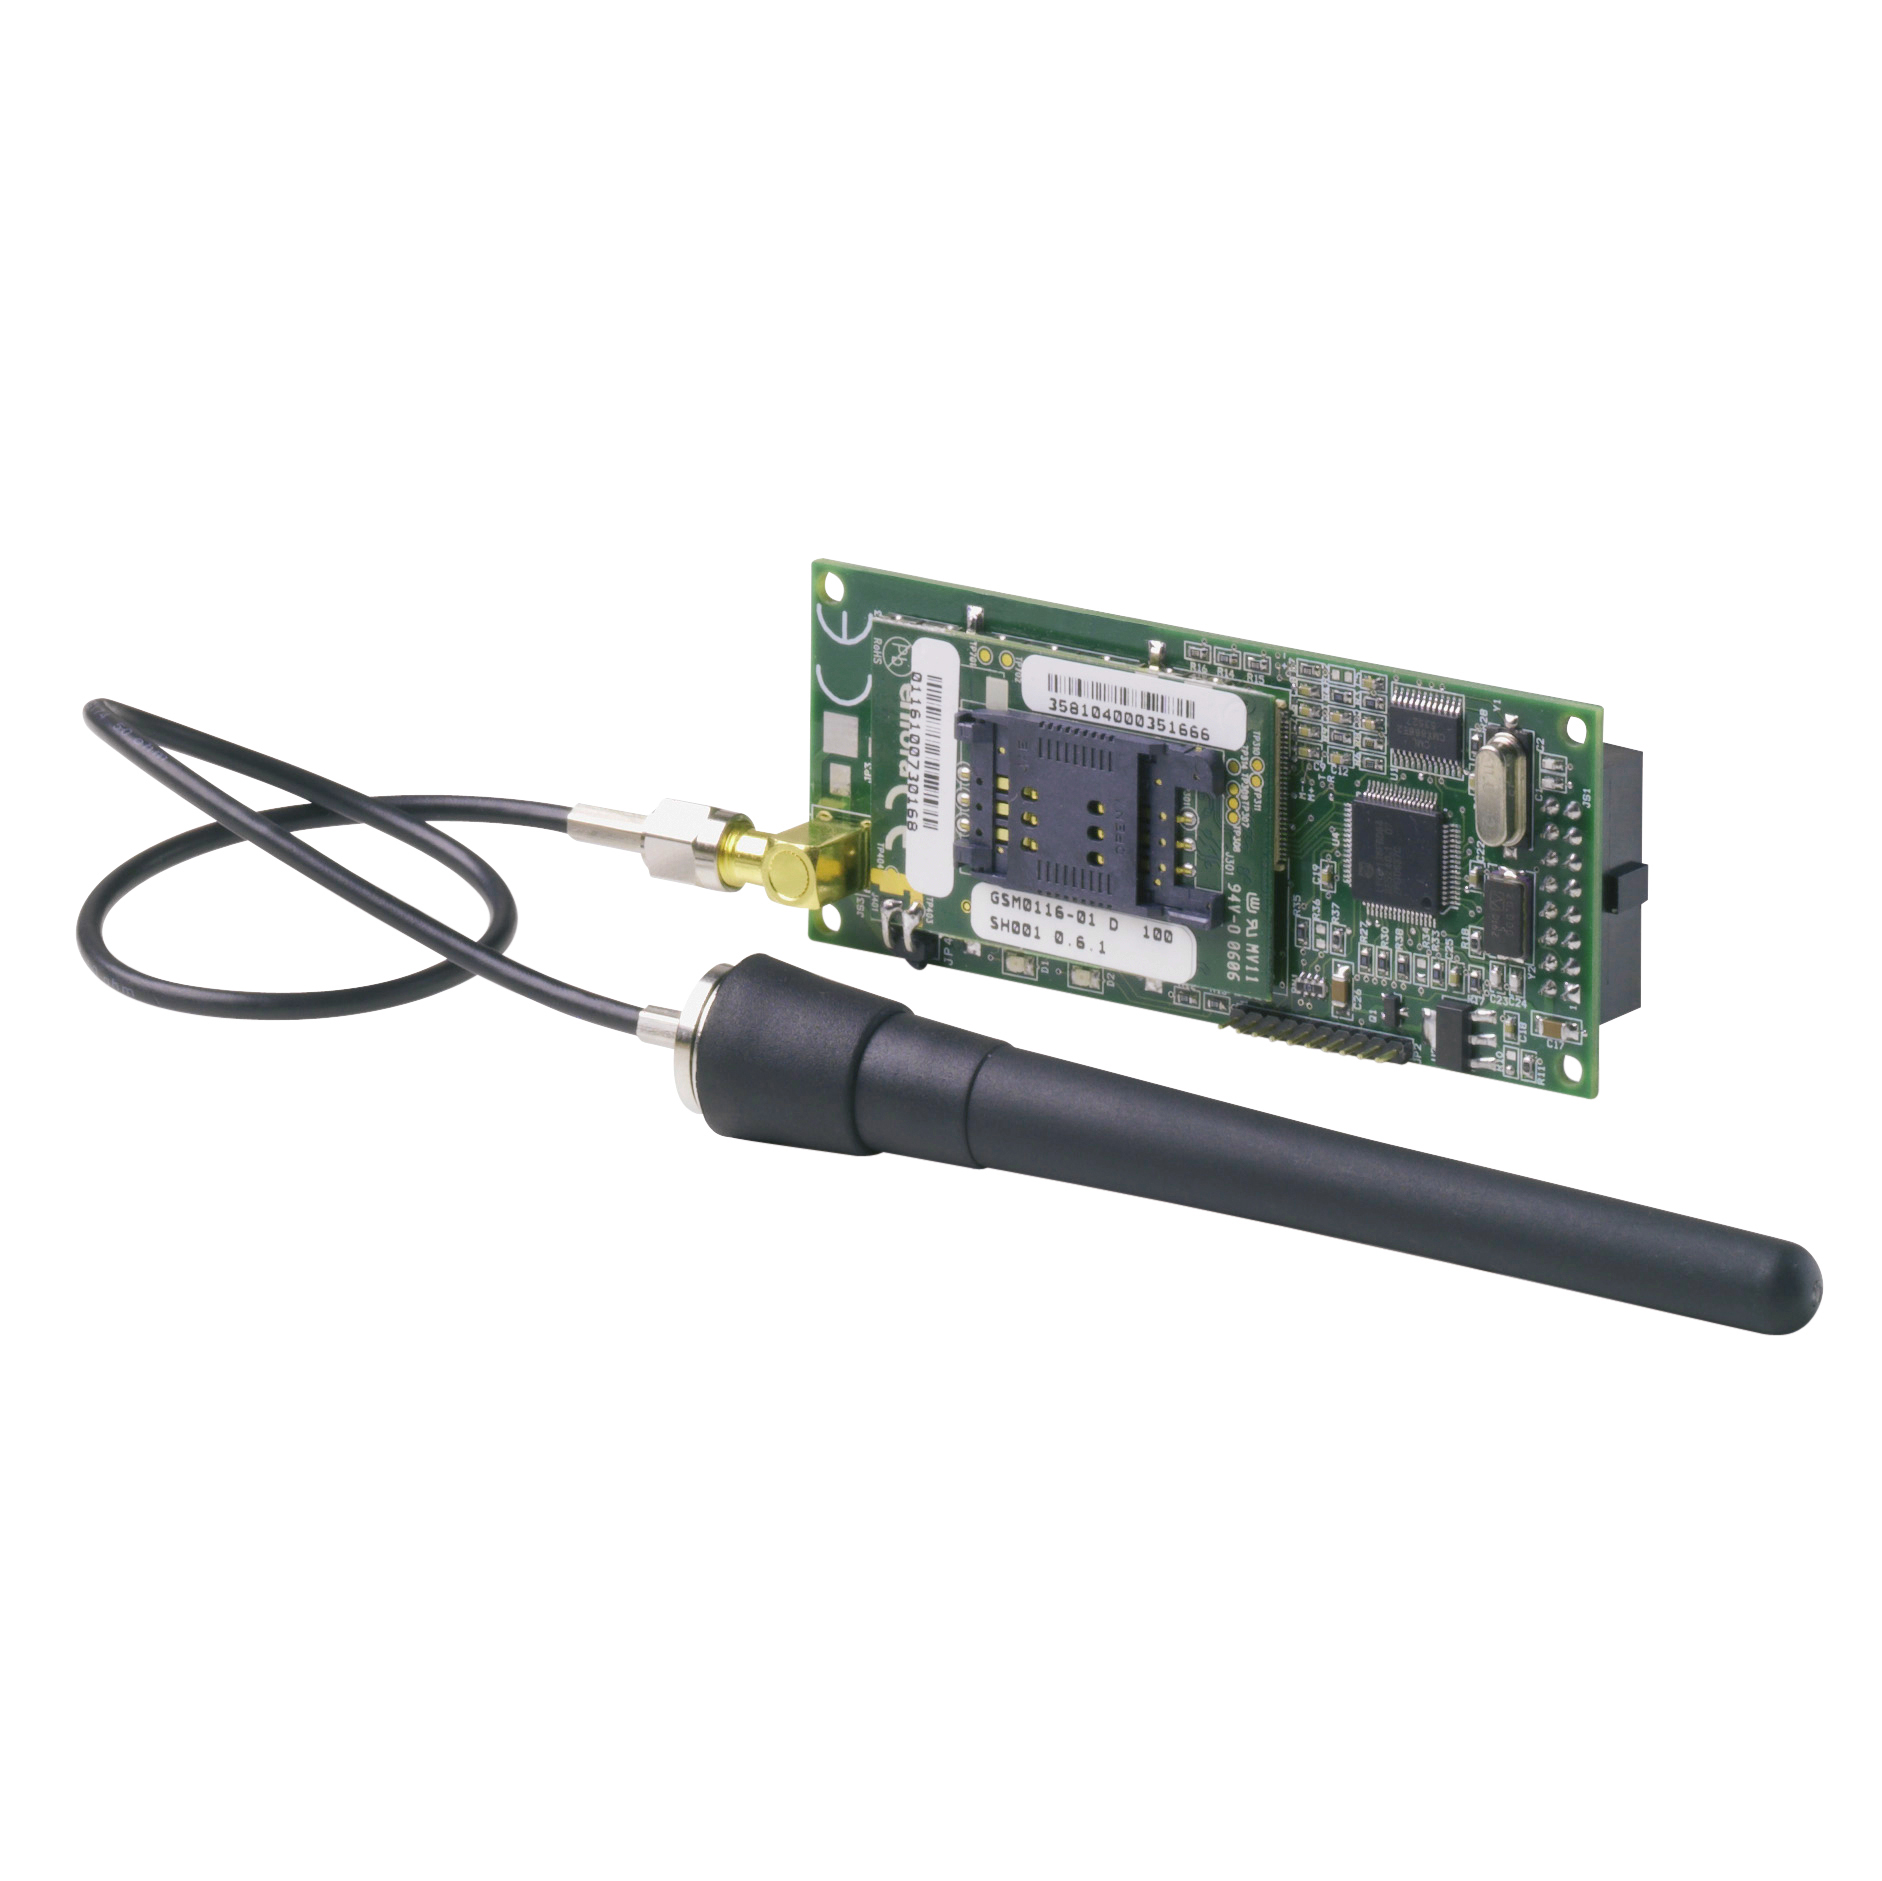 GSM communication module with antenna